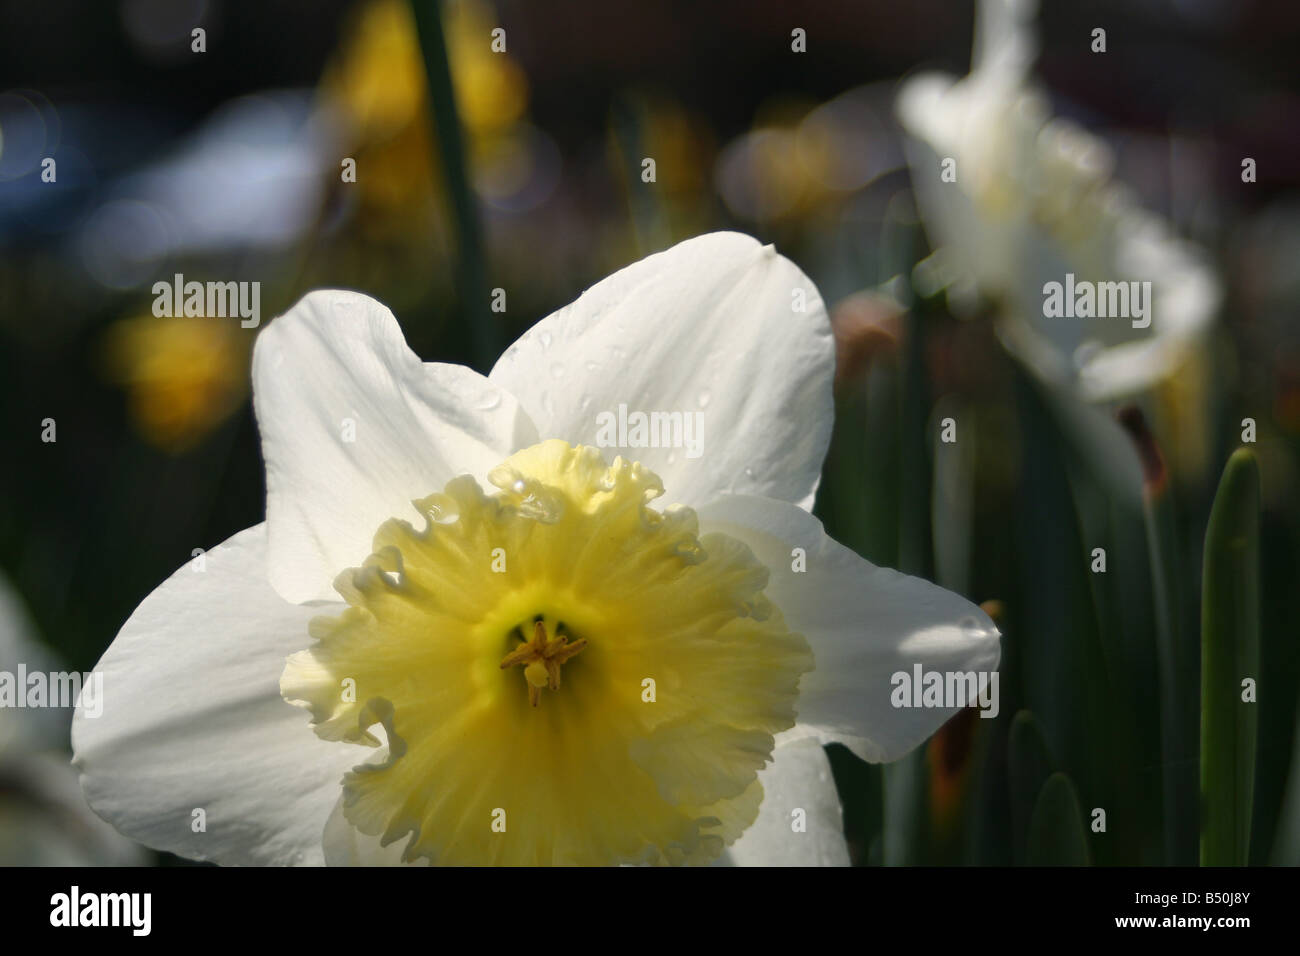 A daffodil in early Spring. - Stock Image